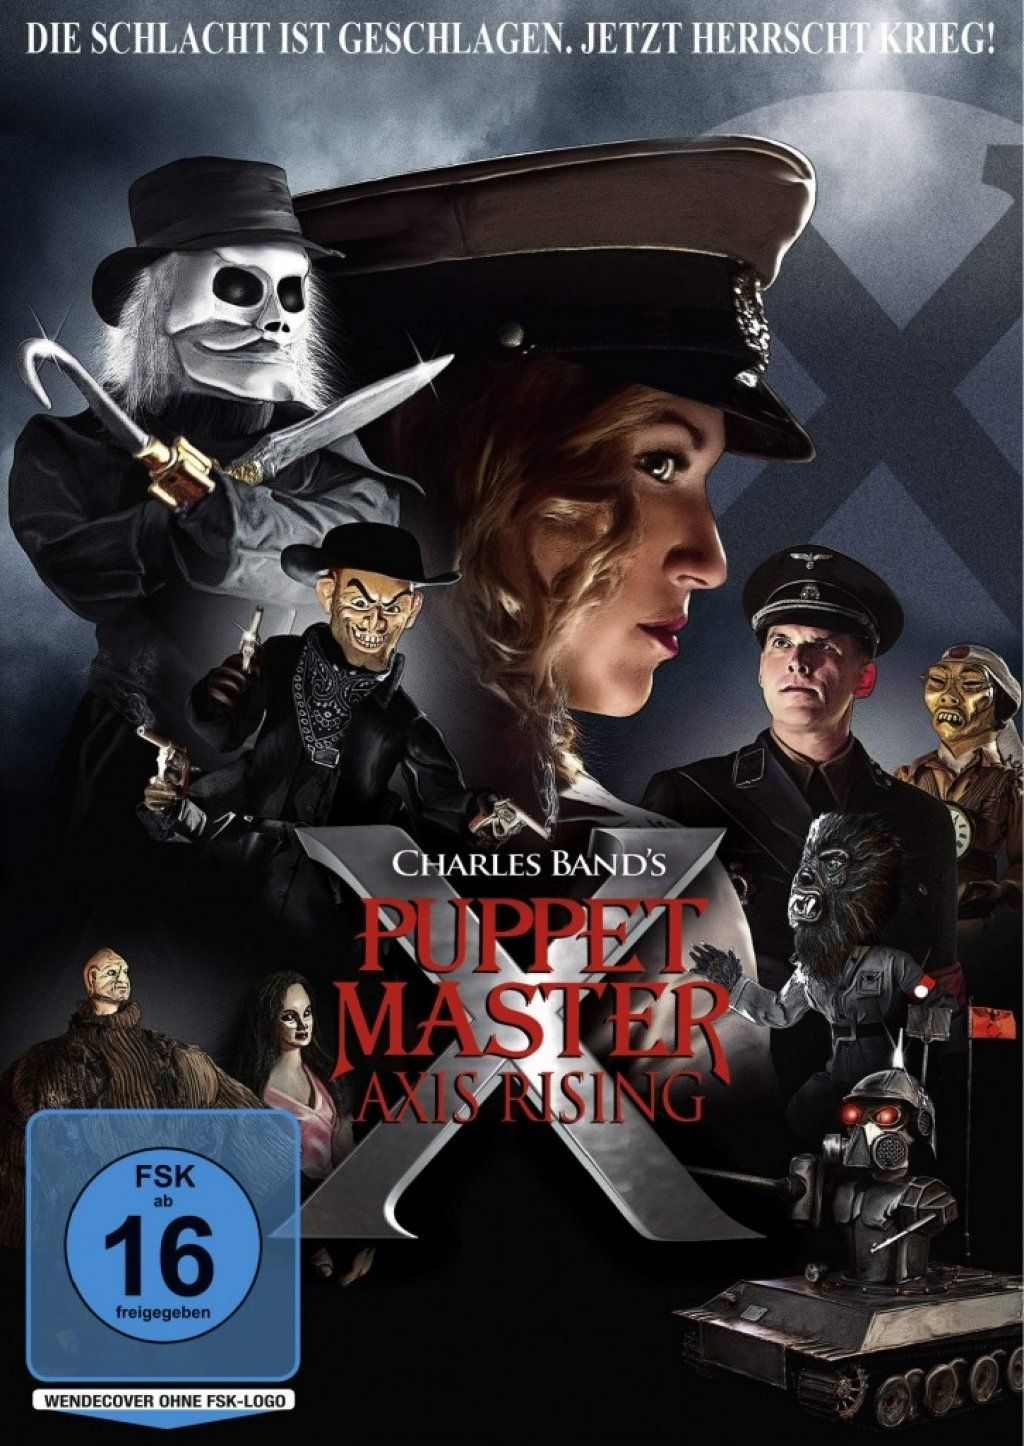 Puppet Master X - Axis Rising